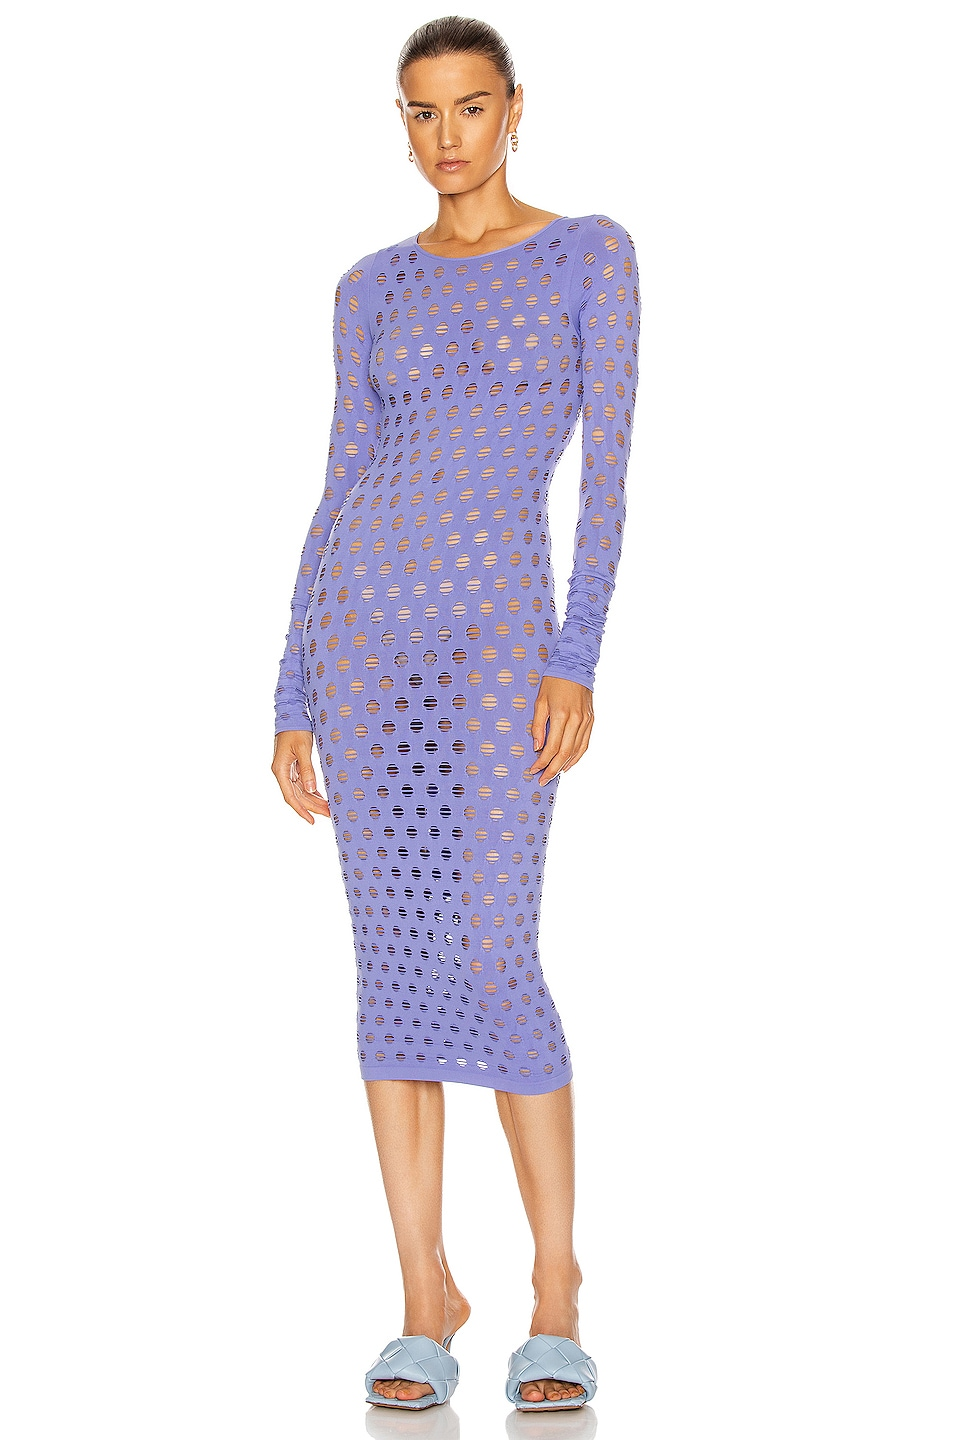 Image 1 of Maisie Wilen Perforated Midi Dress in Ube